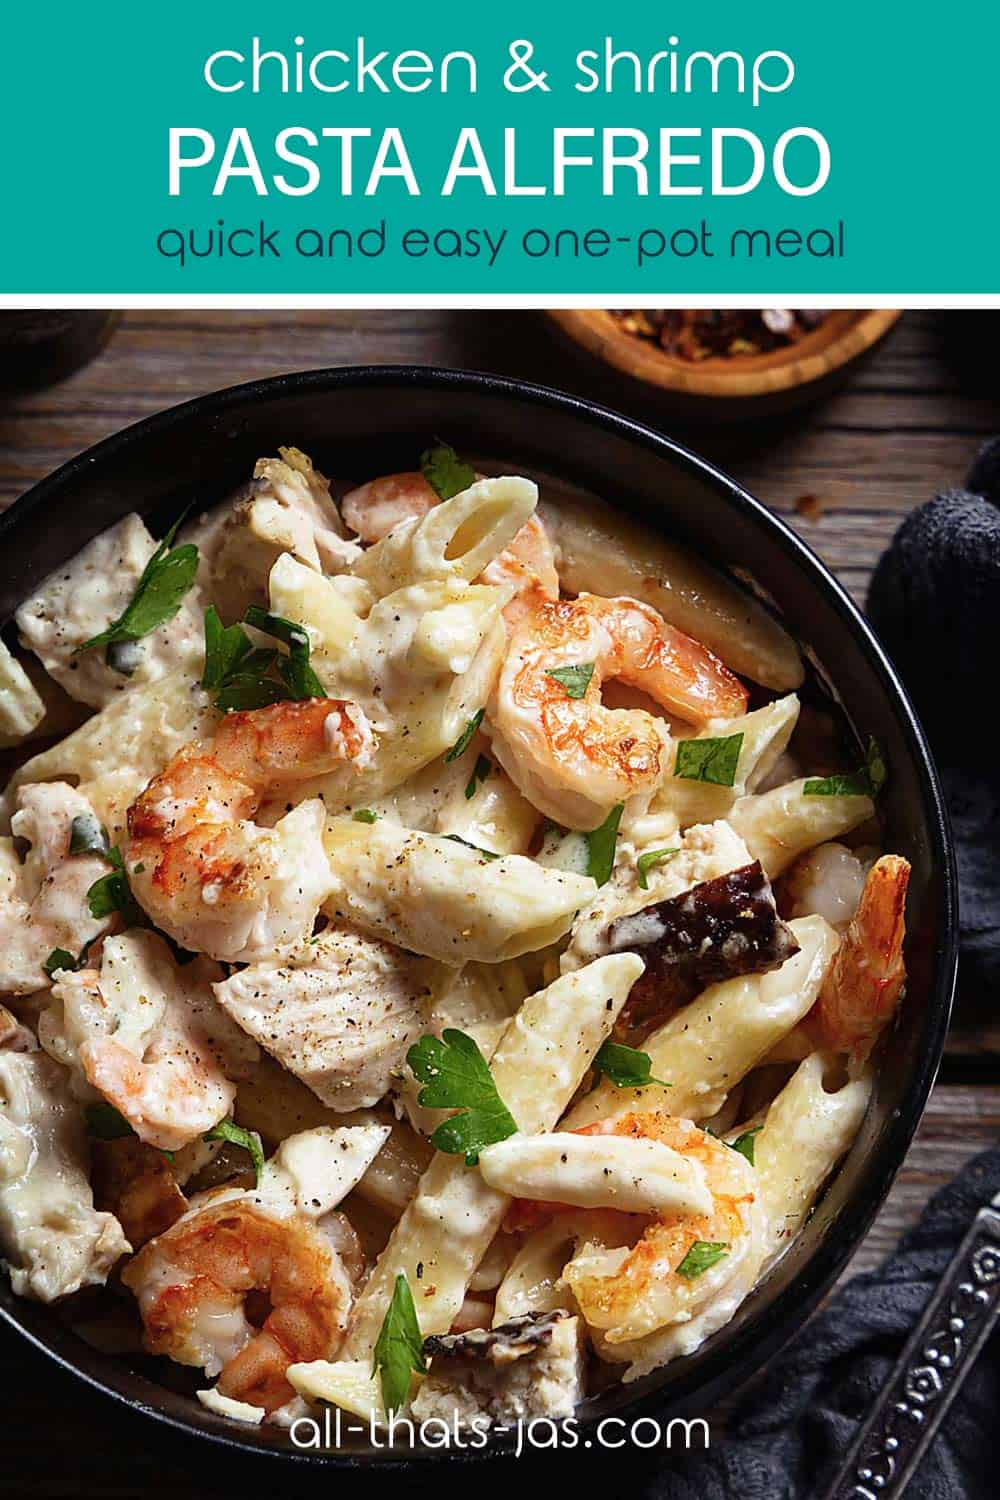 A close up pasta with chicken and shrimp scampi in a bowl with text overlay.